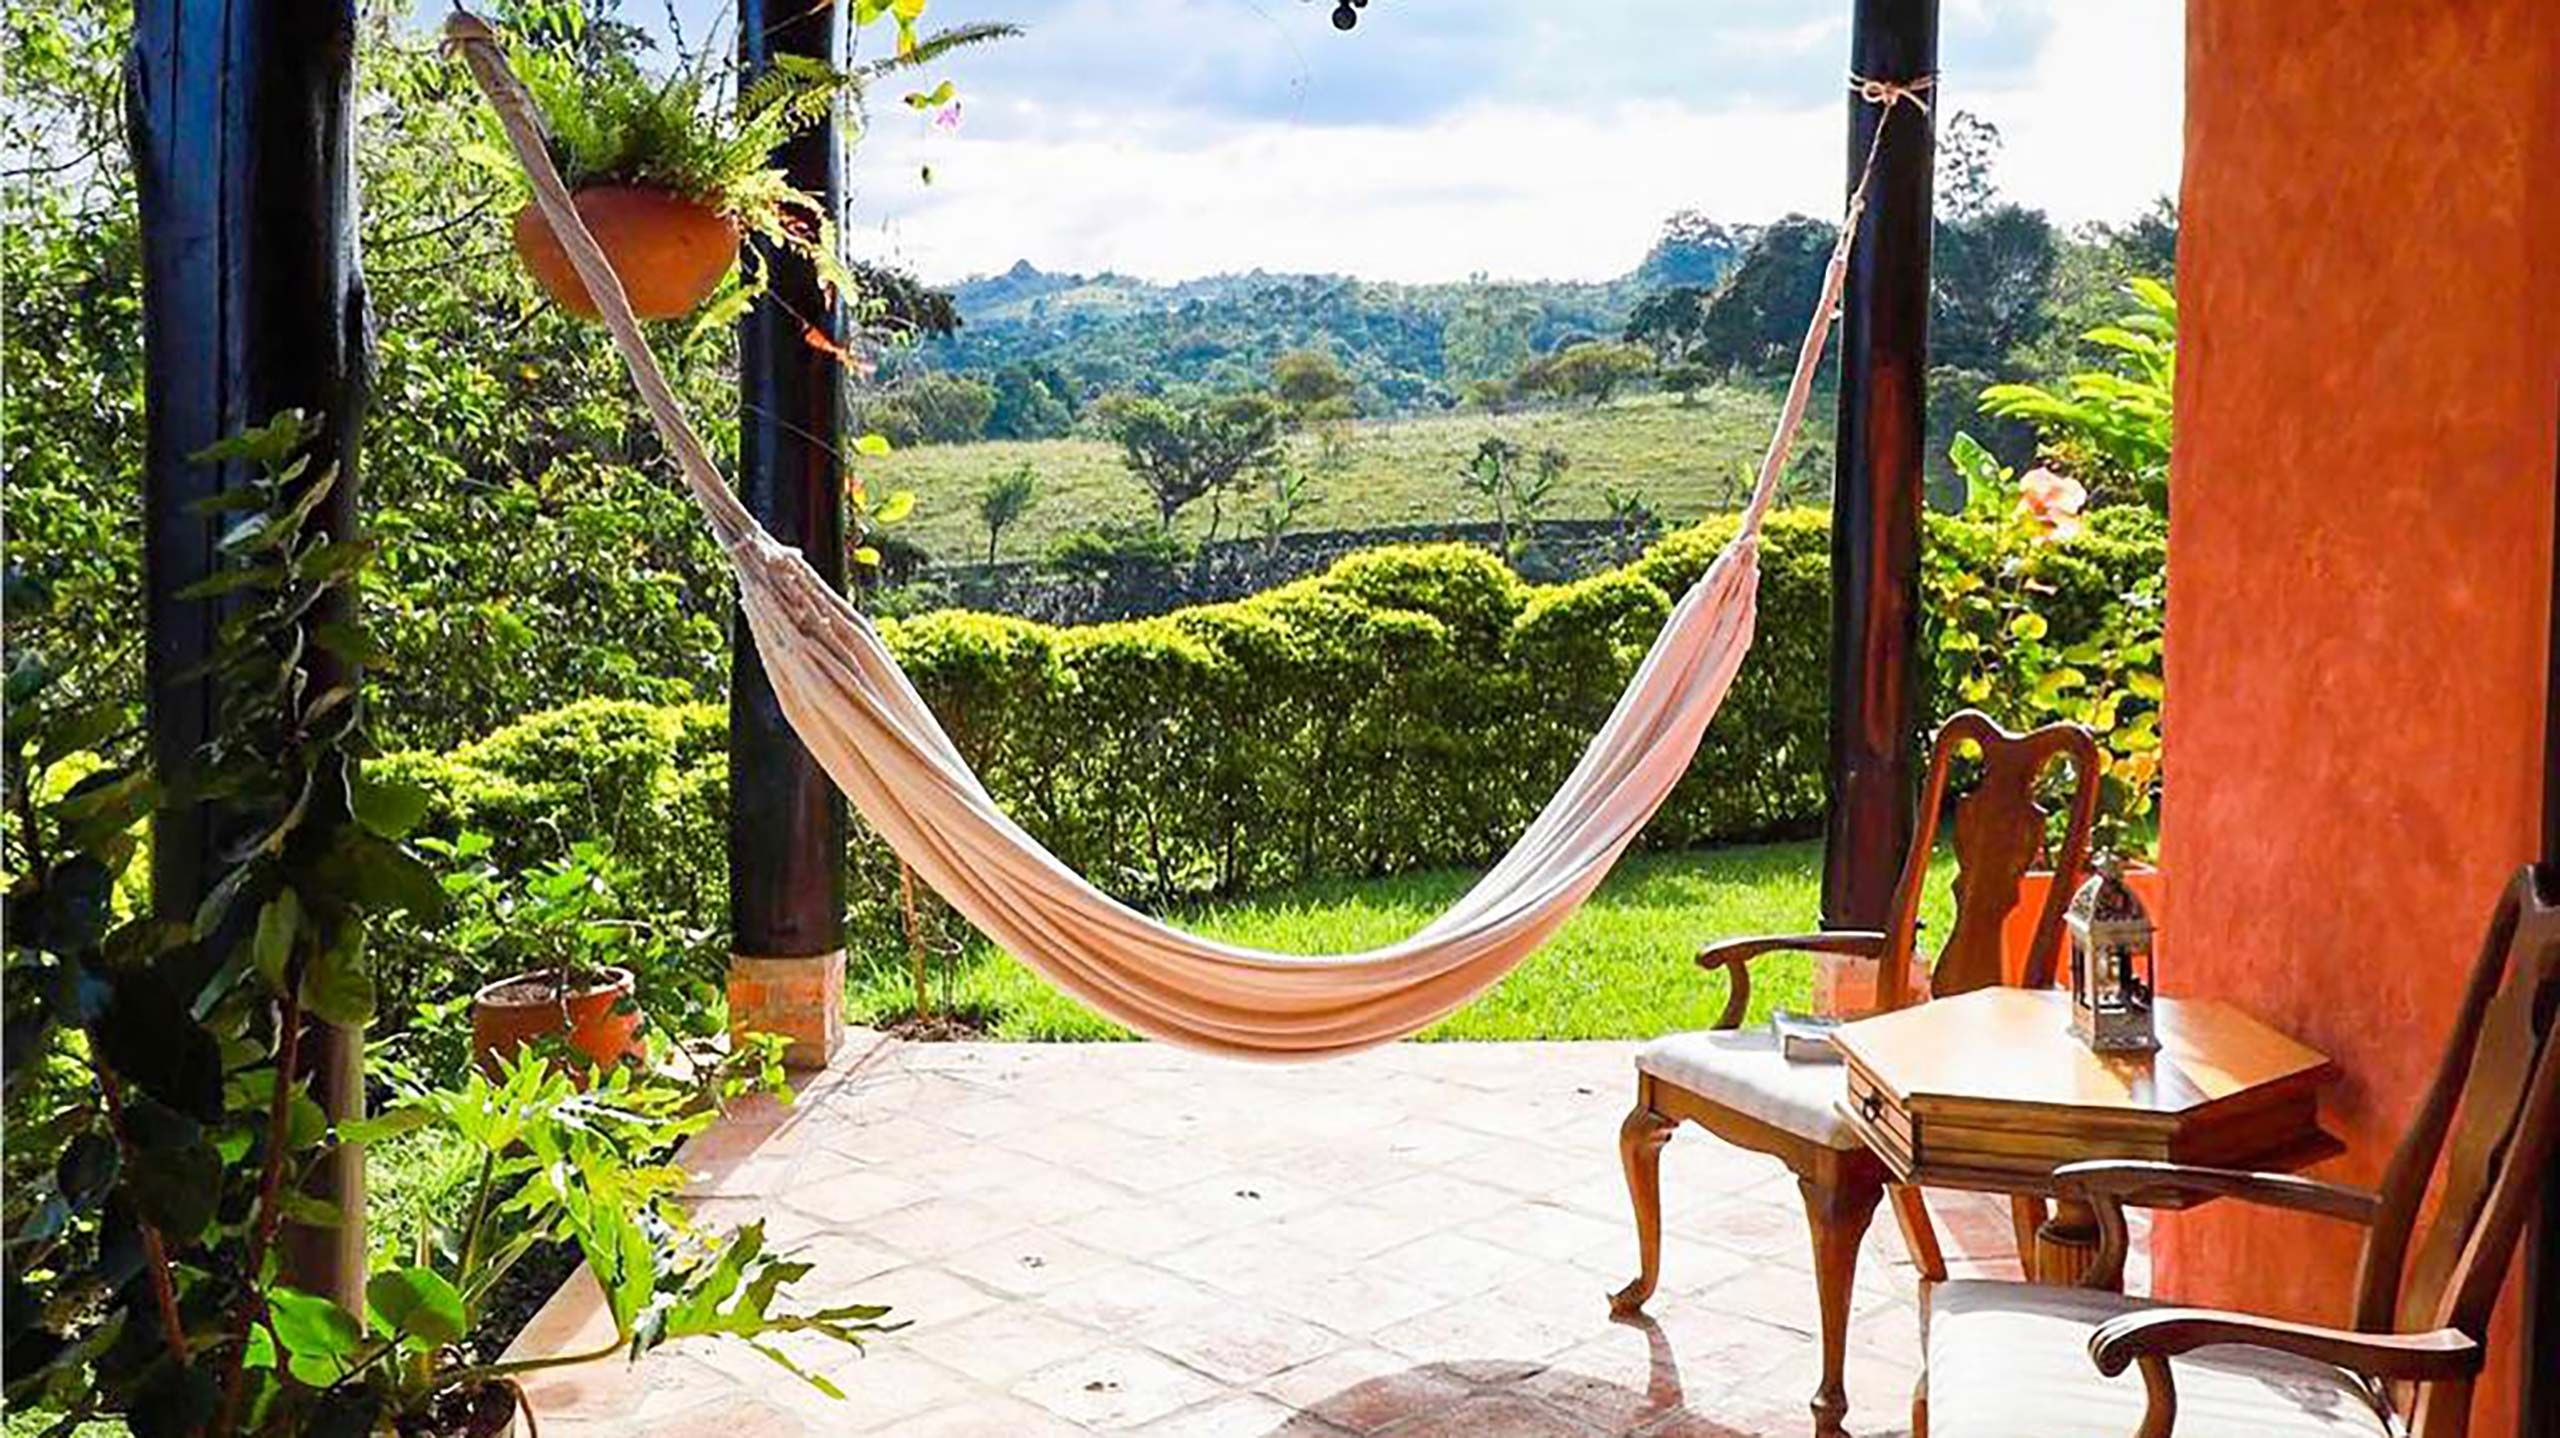 Along the hotel a hammock with a beautiful views of luscious green country side.